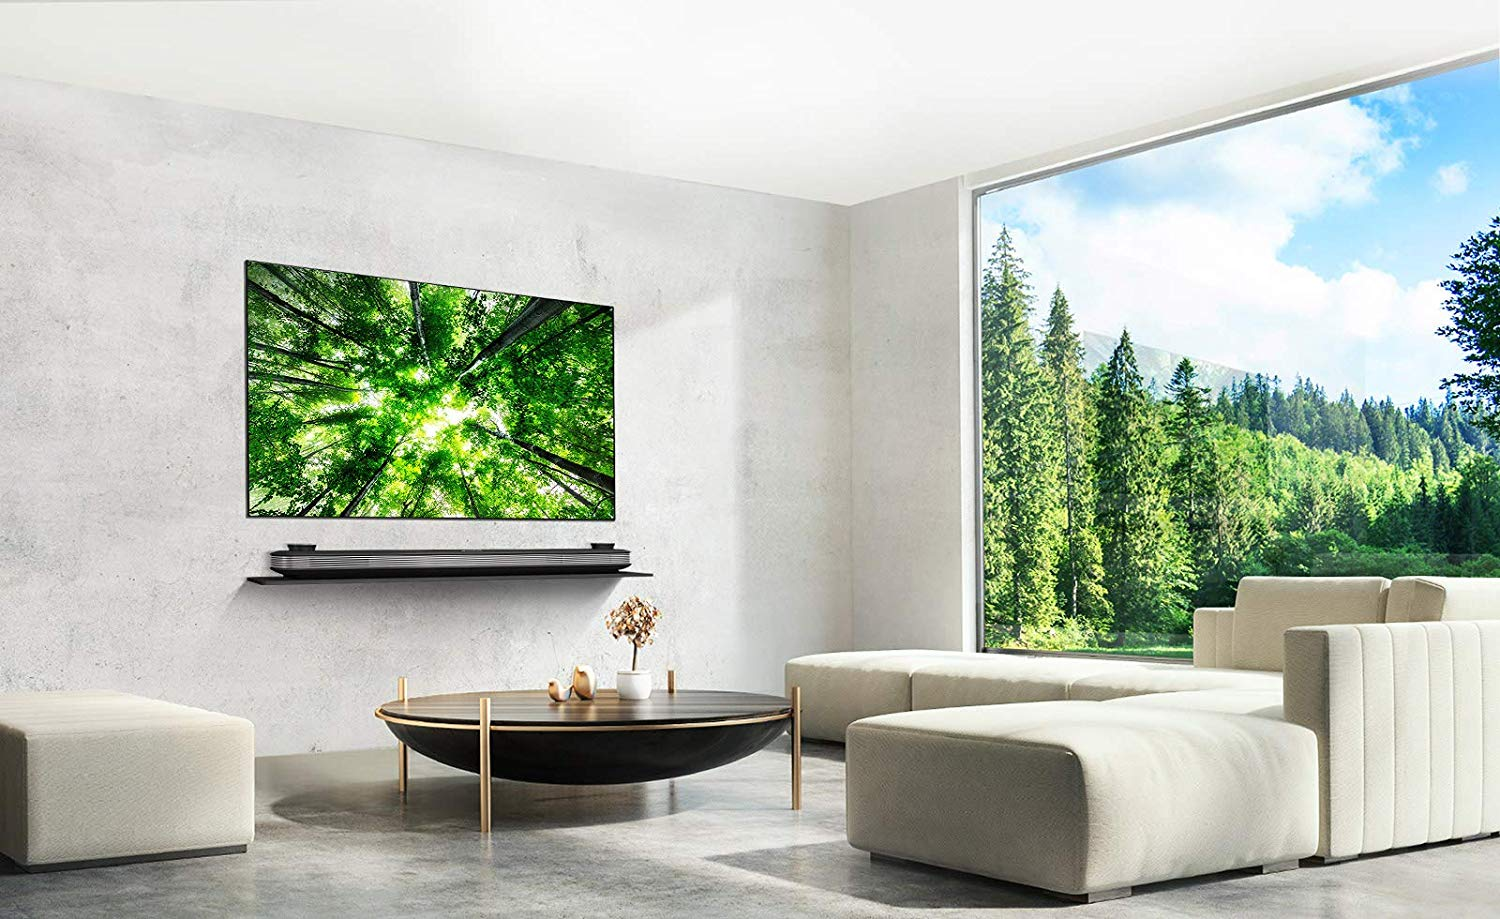 LG OLED77W8 77 inch 4K Smart TV review